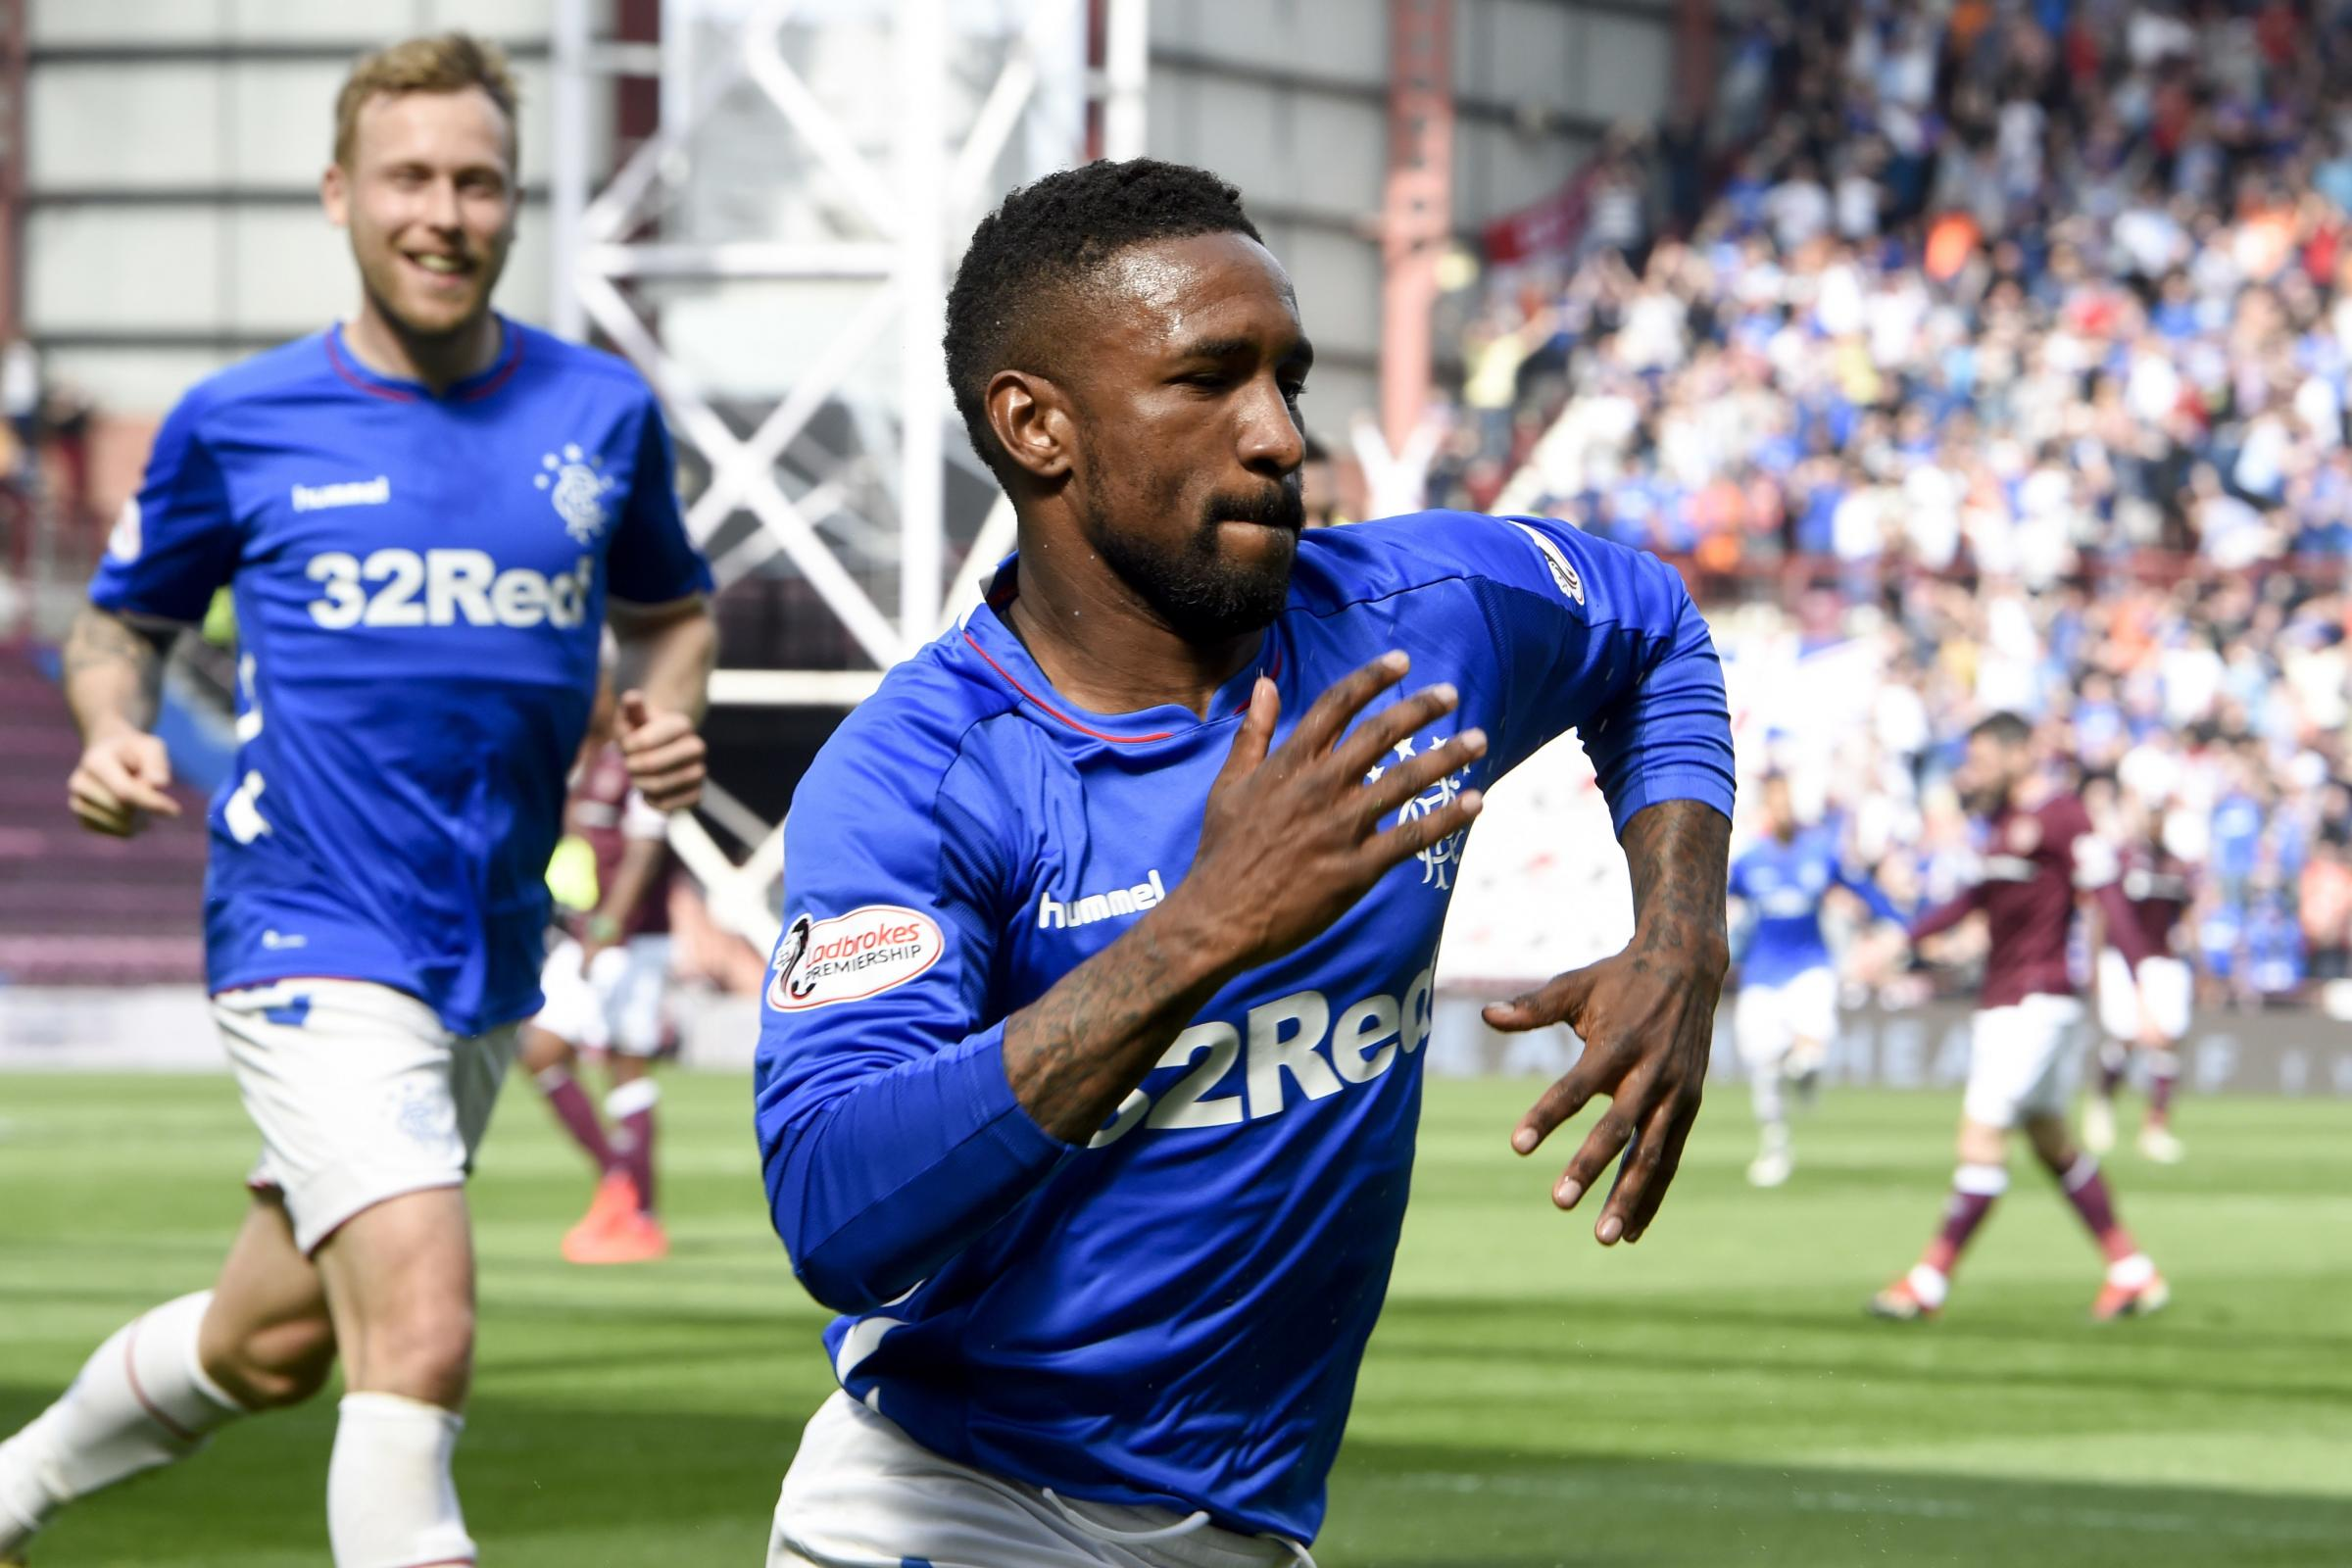 Hearts 1 Rangers 3: Ibrox side hitting form on the run in just as games run out